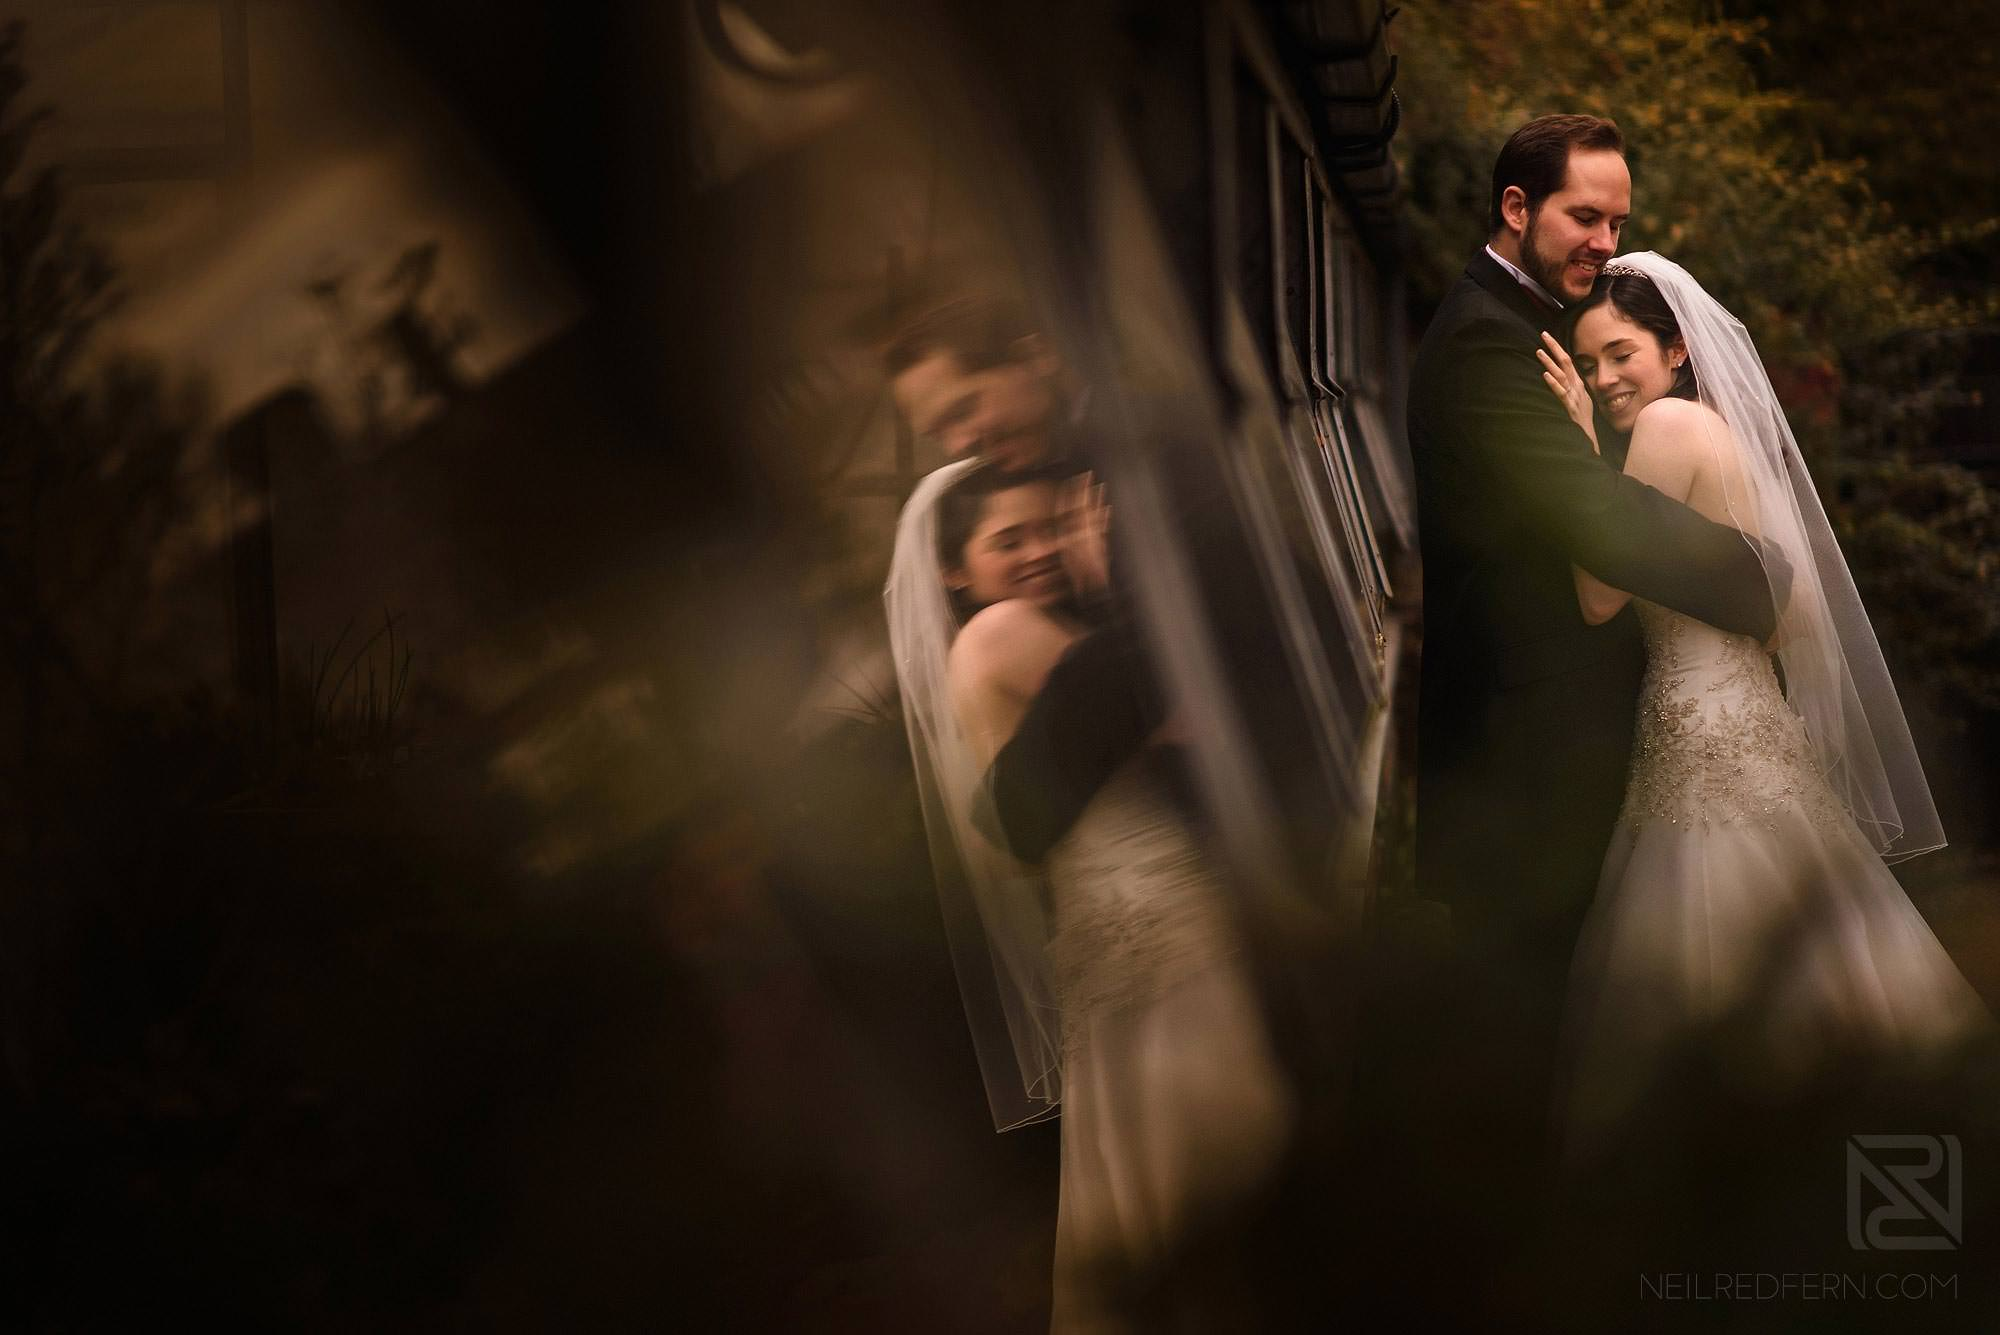 romantic photograph of bride and groom with reflection in glass